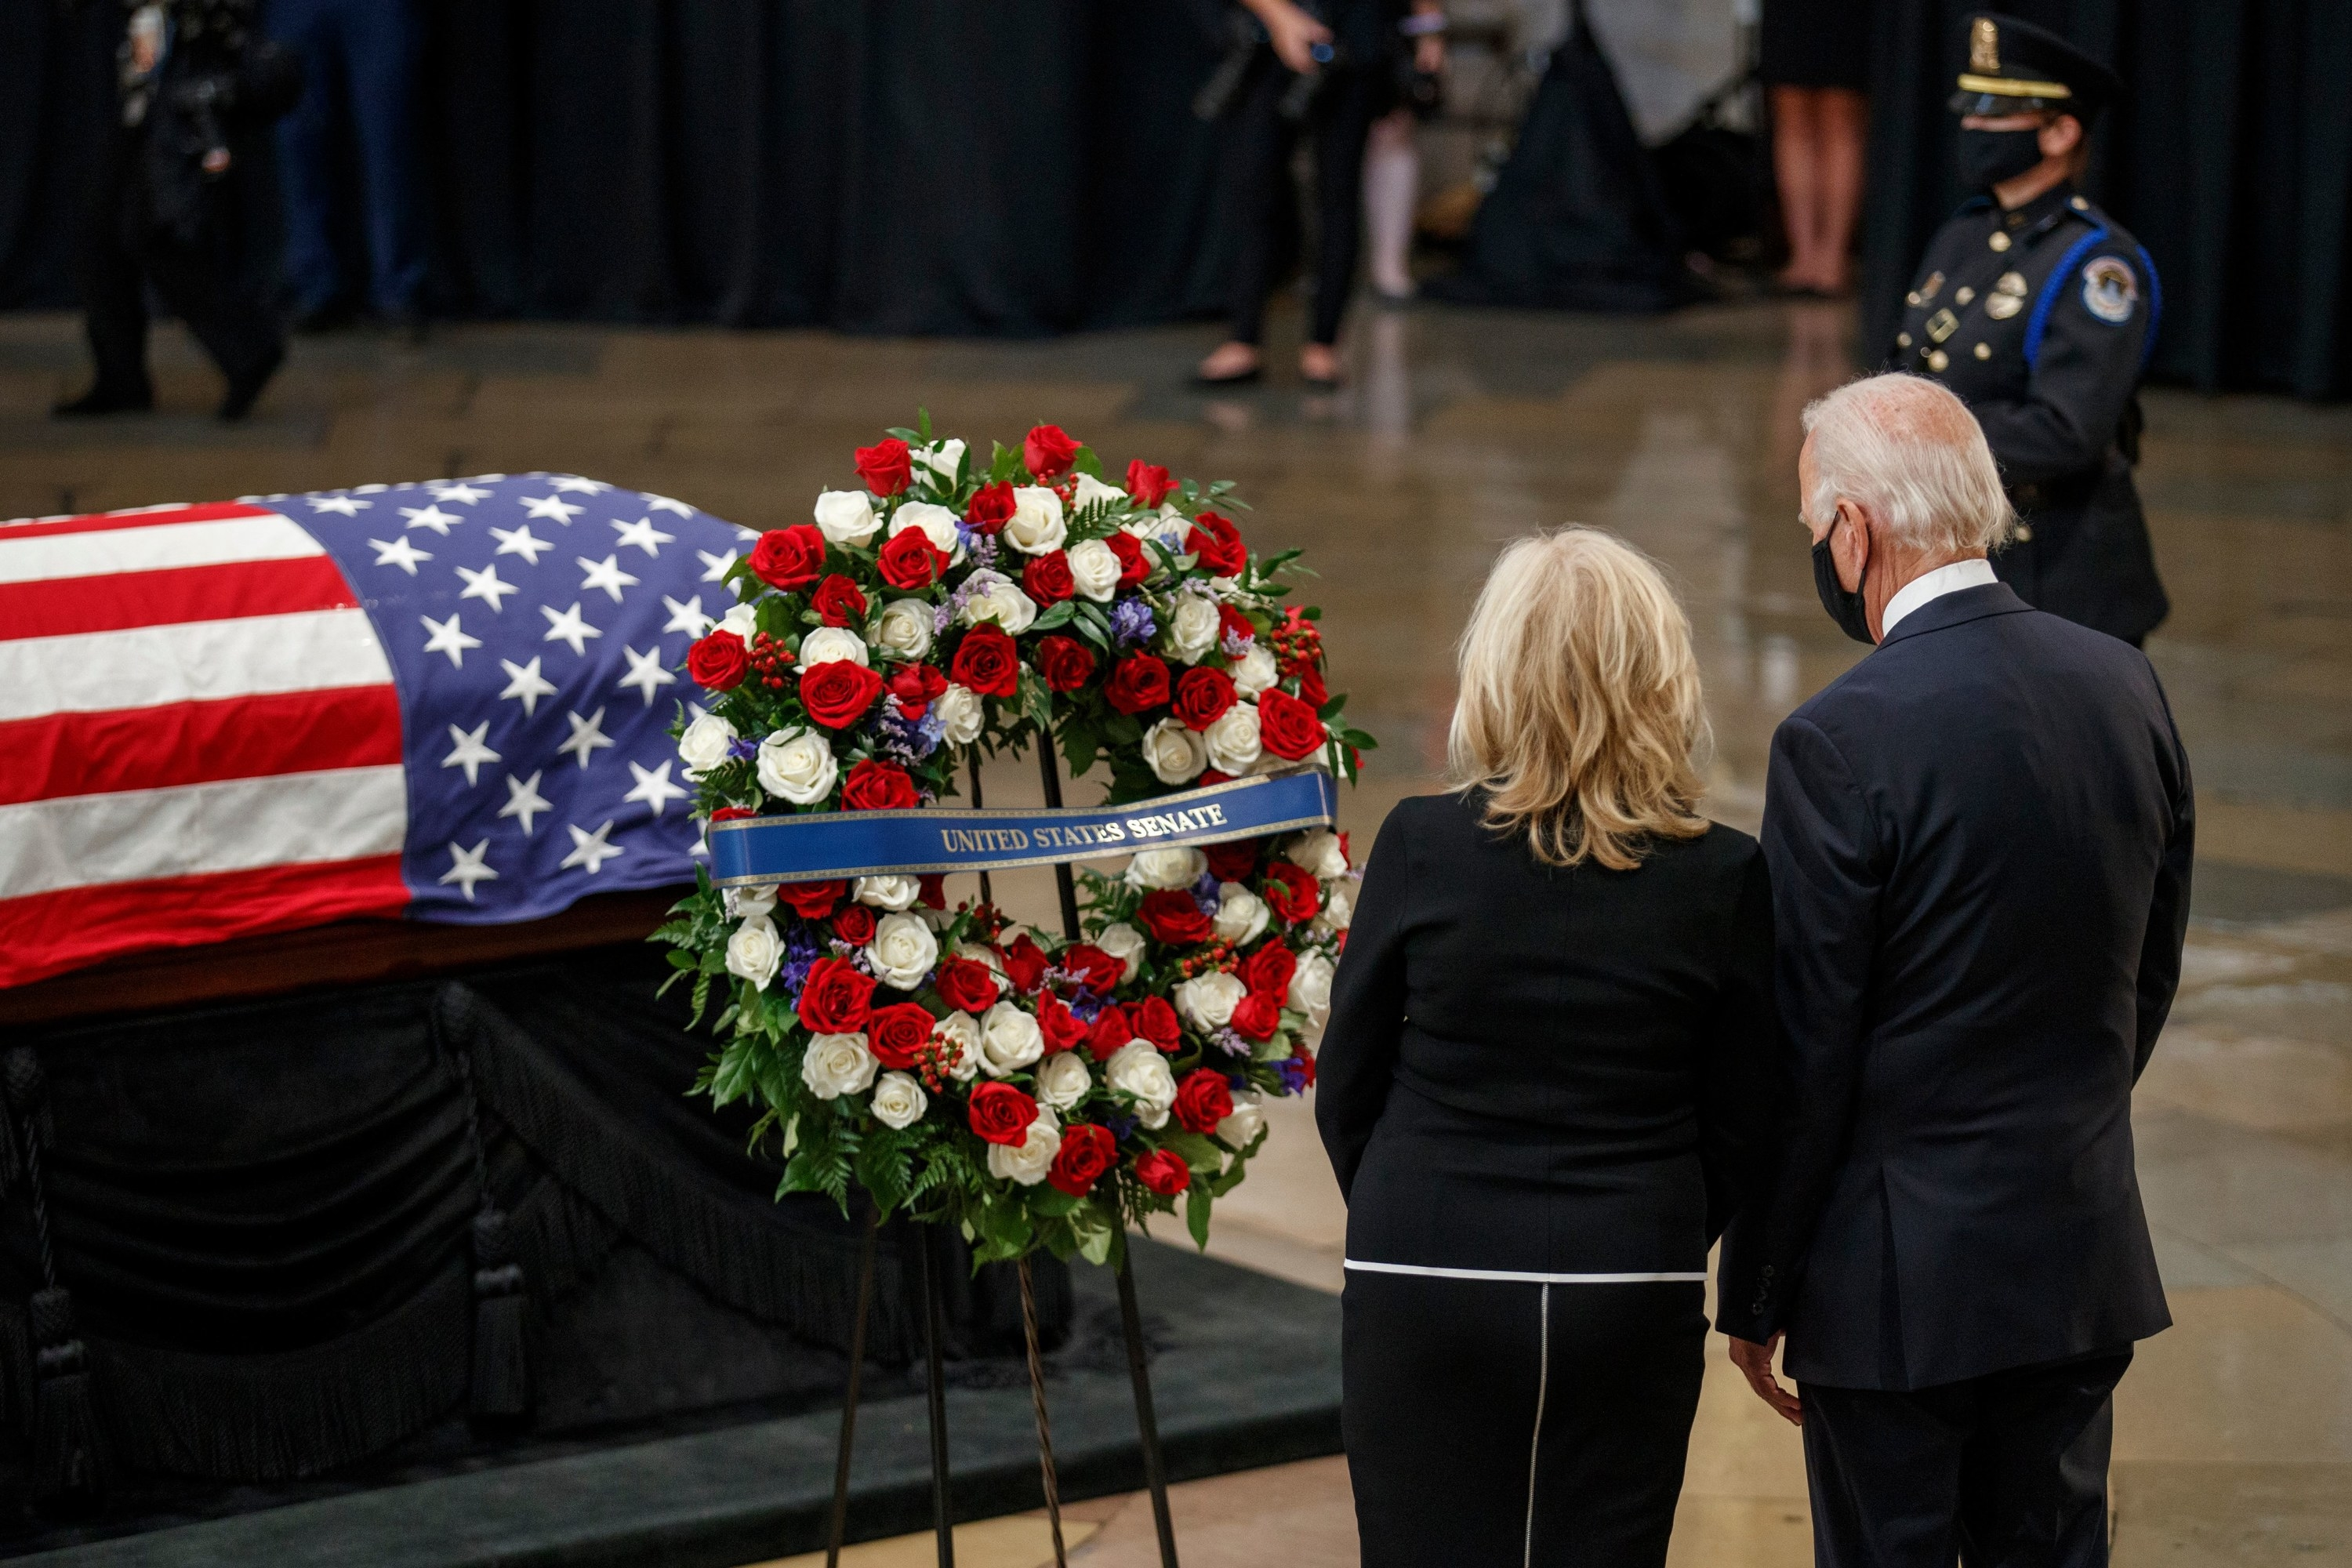 """Joe and Jill Biden stand by the flag-draped casket; a wreath of roses has a sash that reads """"United States Senate"""""""